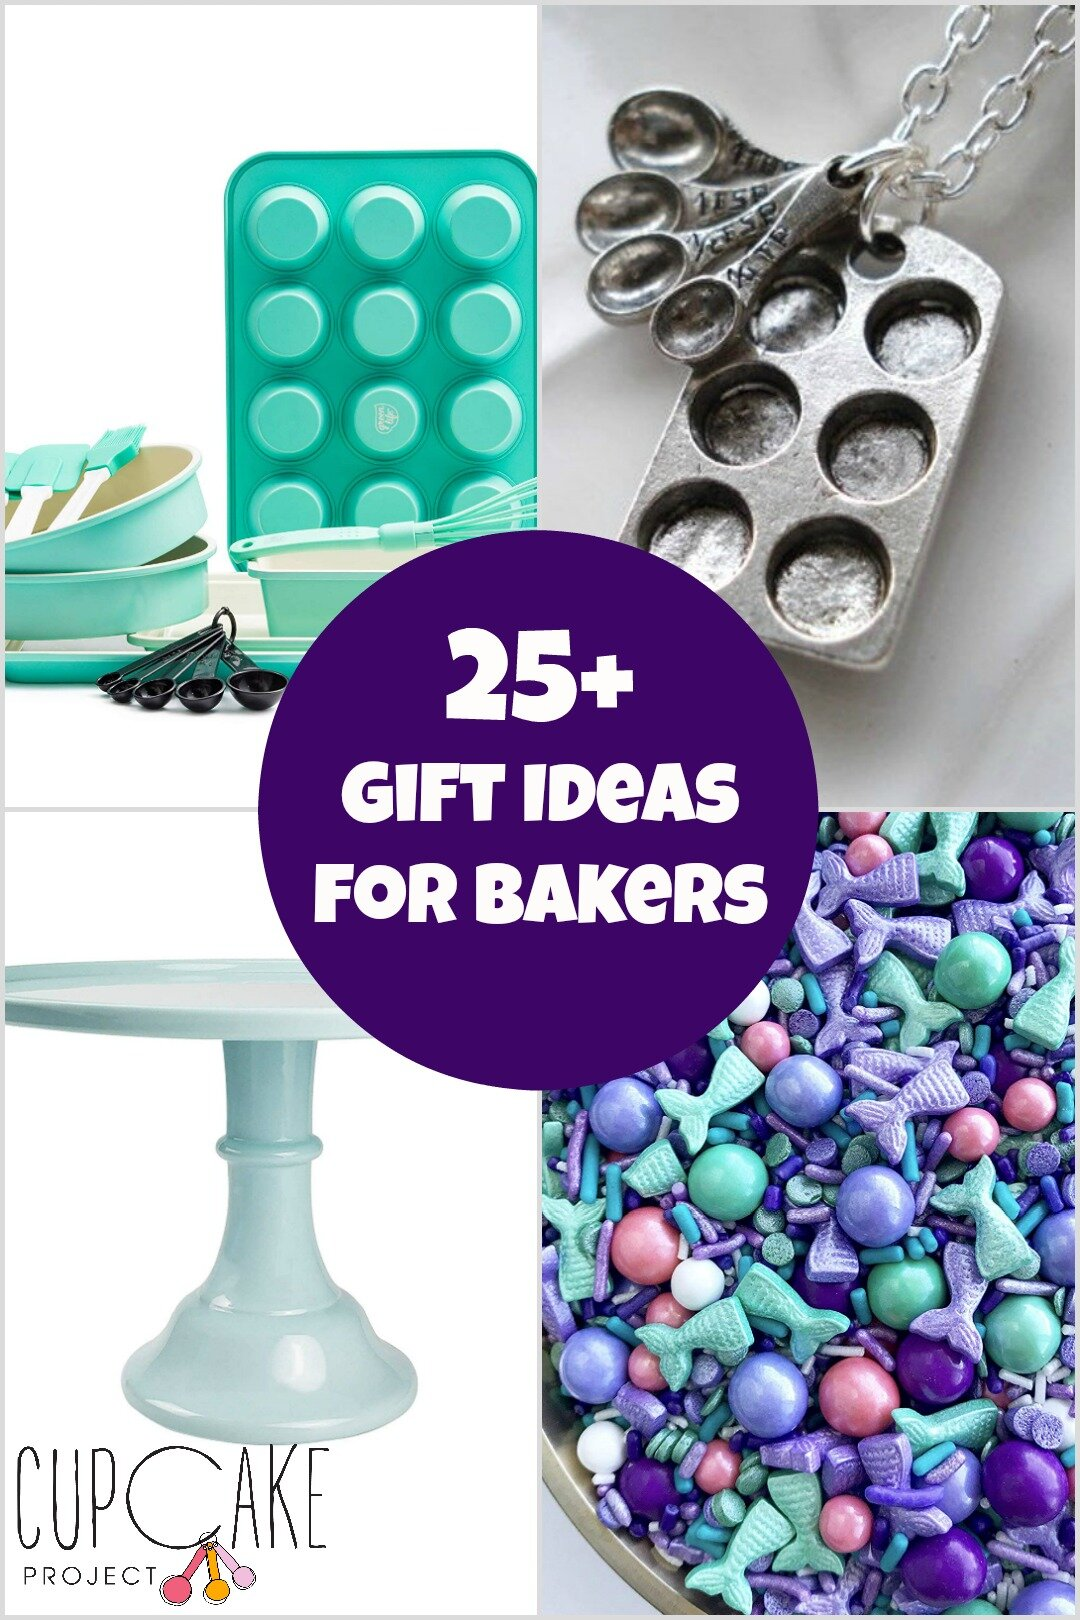 Collage of gift ideas for bakers